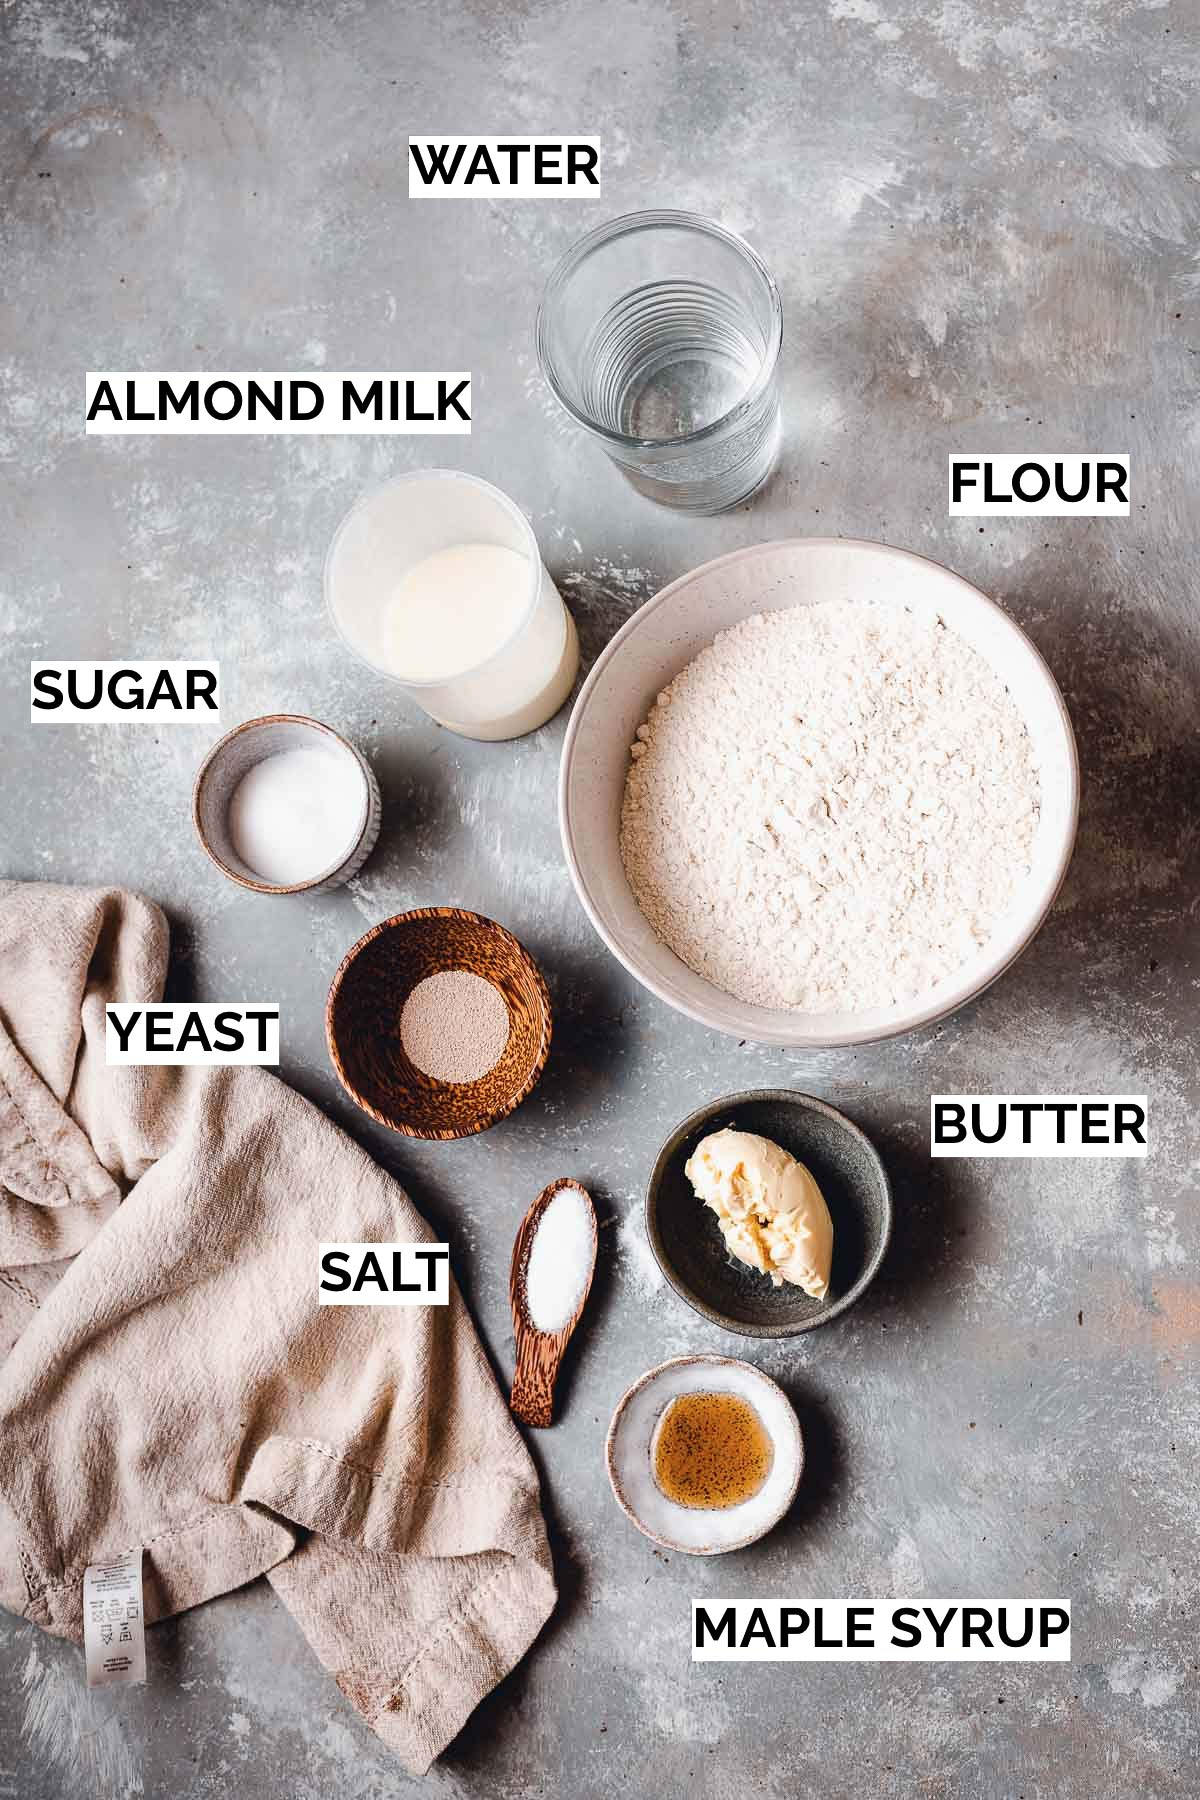 All ingredients needed to make a dinner roll laid out.